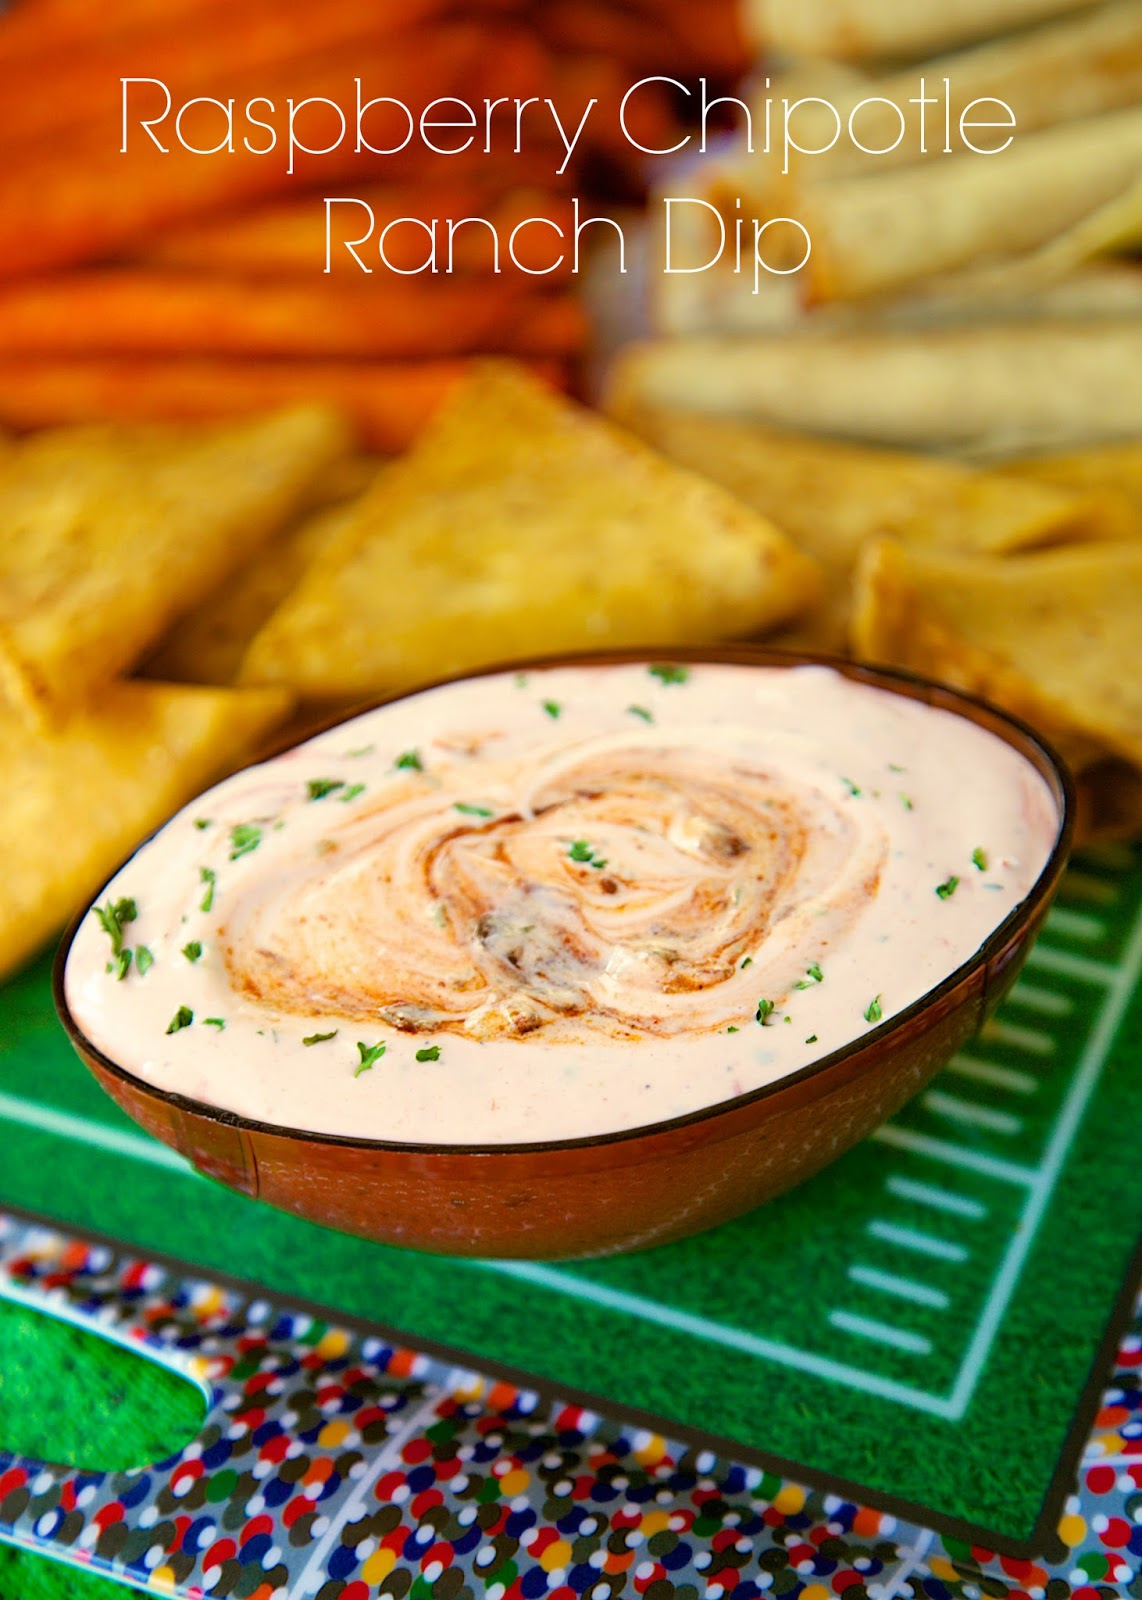 Raspberry Chipotle Ranch Dip - homemade ranch dip with raspberry jam and chipotle peppers. It packs a kick! Great with veggies, chips, taquitos. Also delicious on top of a baked potato! Simple and delicious dip recipe!